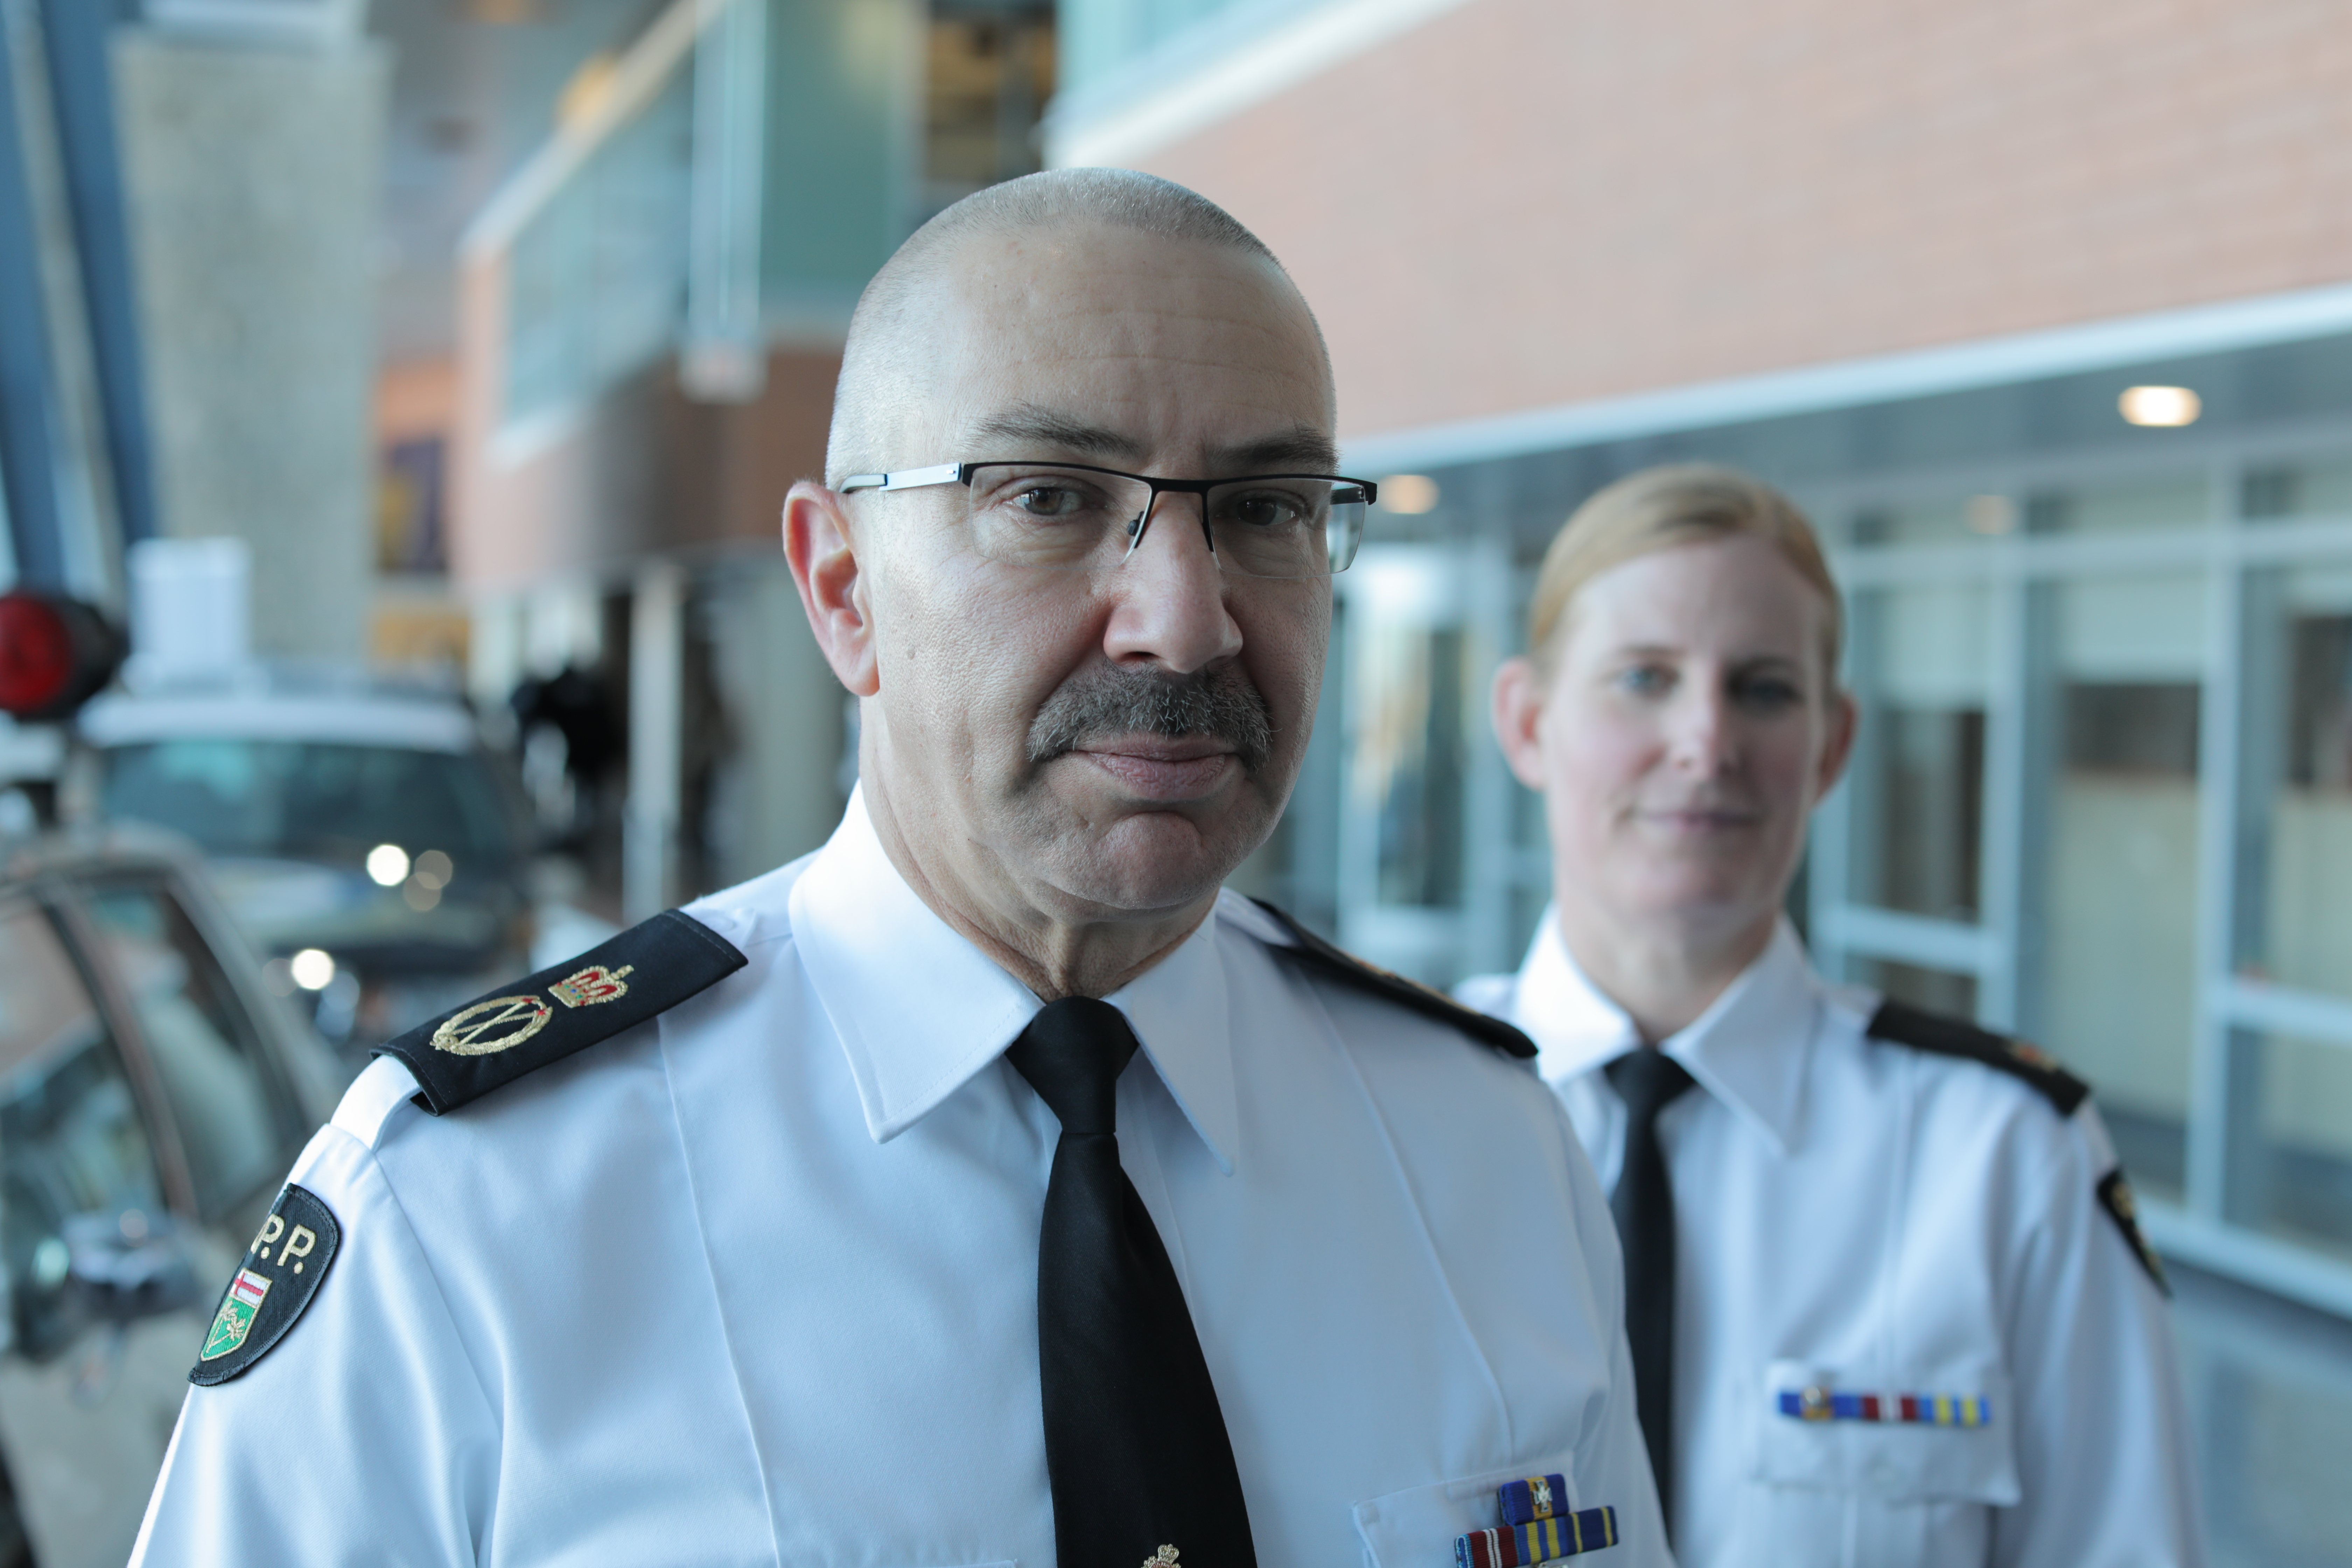 Acting OPP Commissioner Gary Couture and Insp. Robyn MacEachern, head of the force's wellness unit, say the force has taken on new initiatives since the 2012 ombudsman's report, including a 23-member peer support program. (John Badcock/CBC)